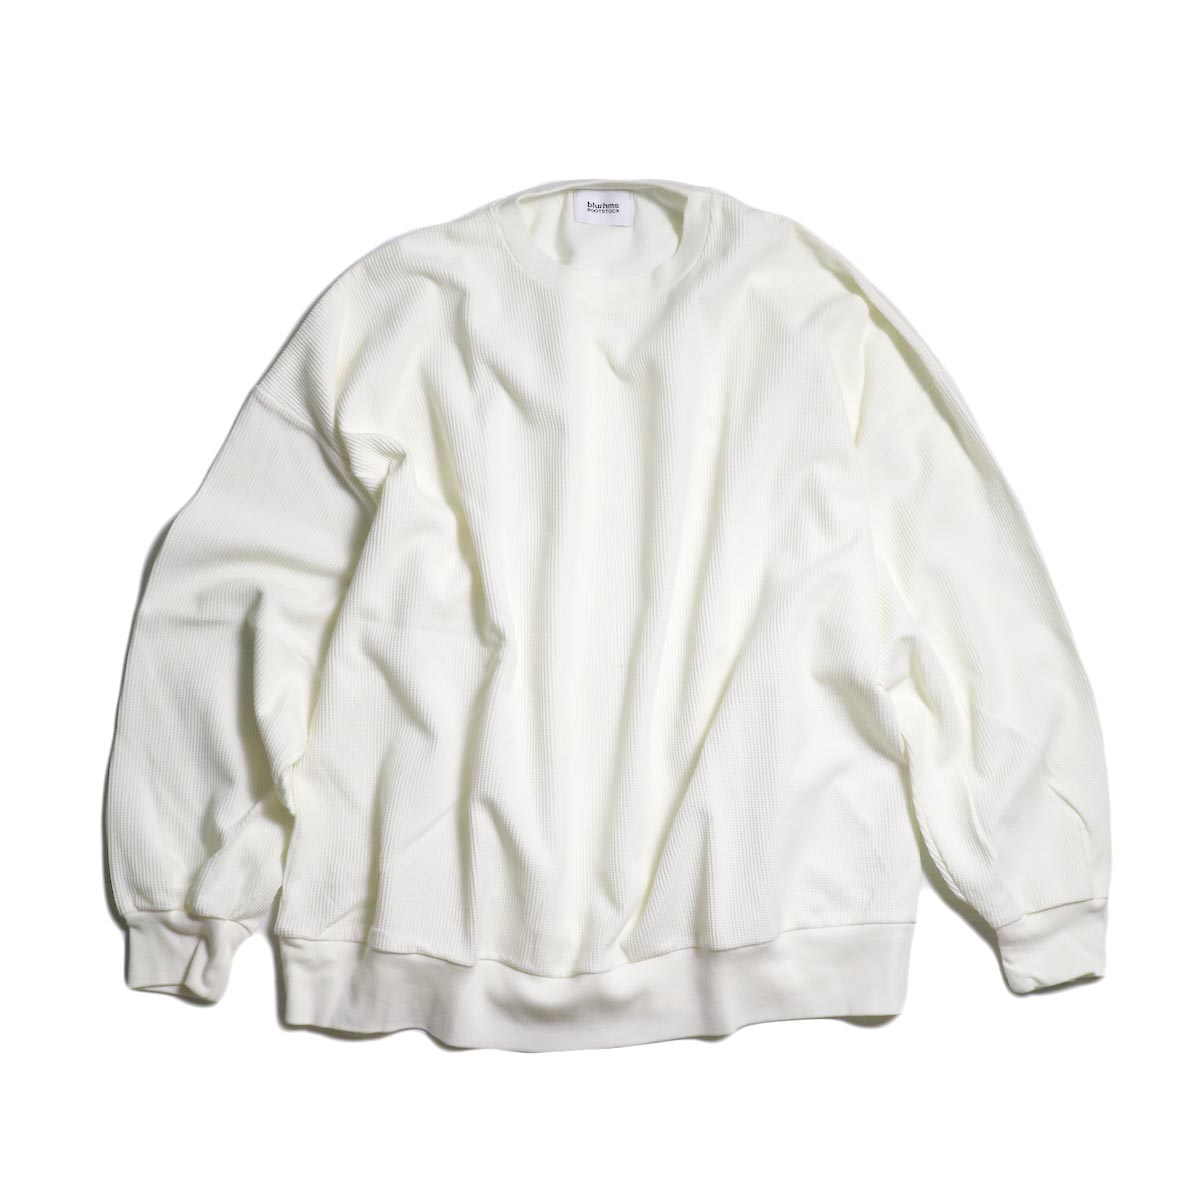 blurhms / New Rough & Smooth Thermal Loose Fit Crew-Neck L/S (White)